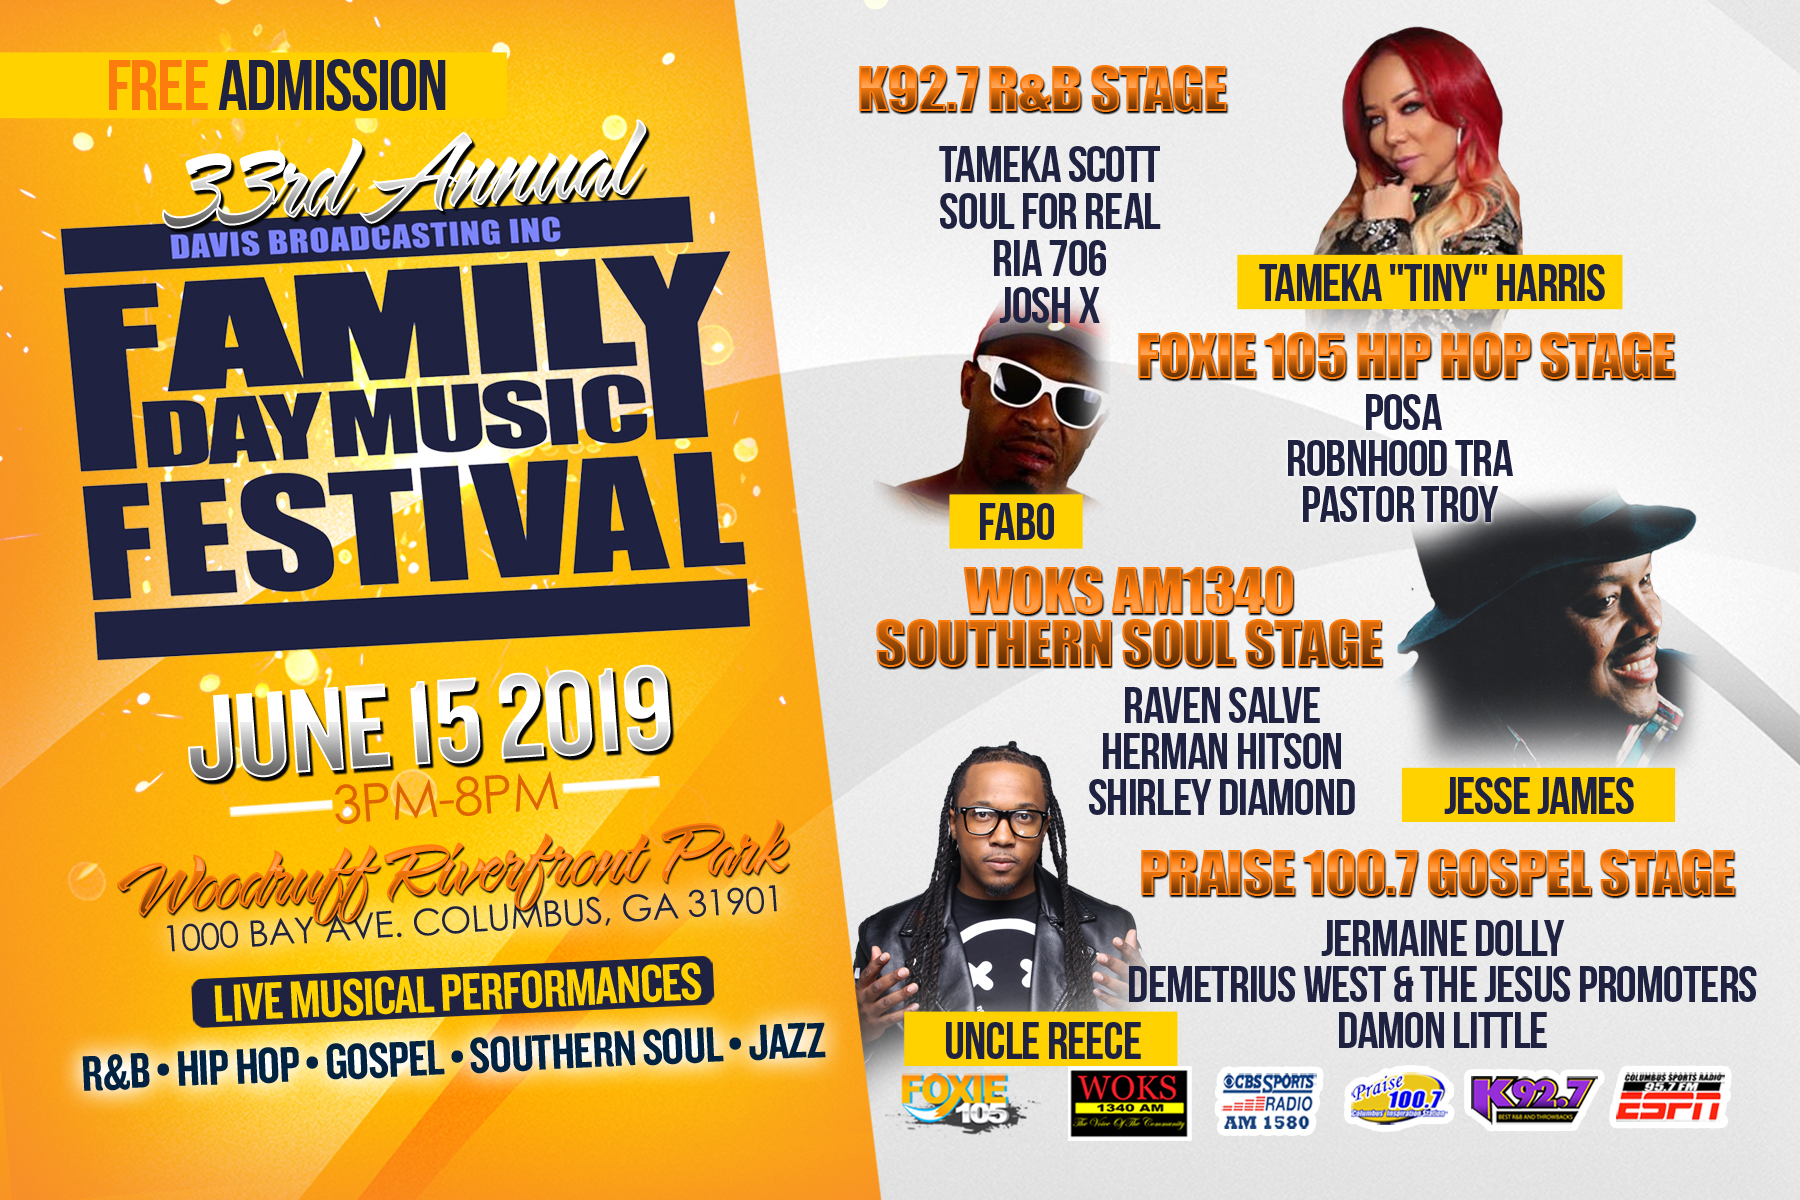 FAMILY DAY MUSIC FESTIVAL